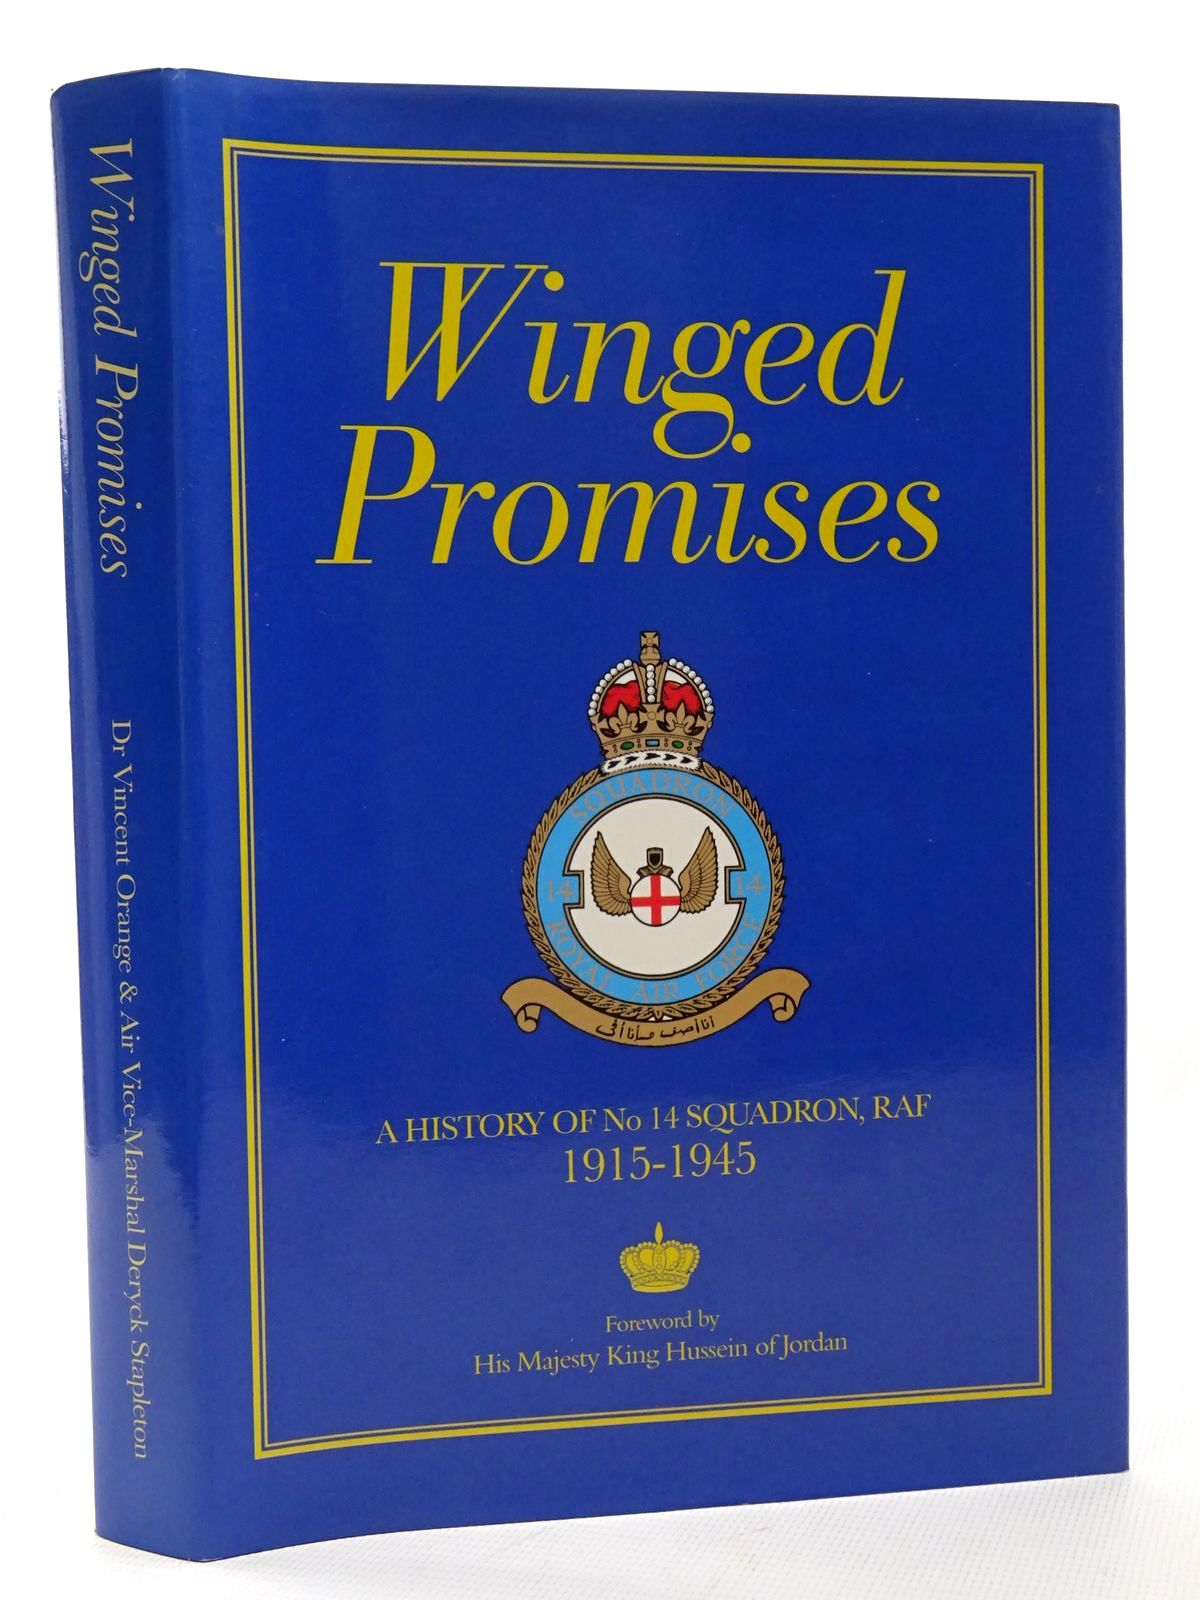 Photo of WINGED PROMISES A HISTORY OF No. 14 SQUADRON RAF 1915-1945 written by Orange, Vincent Deramore, Lord published by Royal Air Force Benevolent Fund Enterprises (STOCK CODE: 1610207)  for sale by Stella & Rose's Books